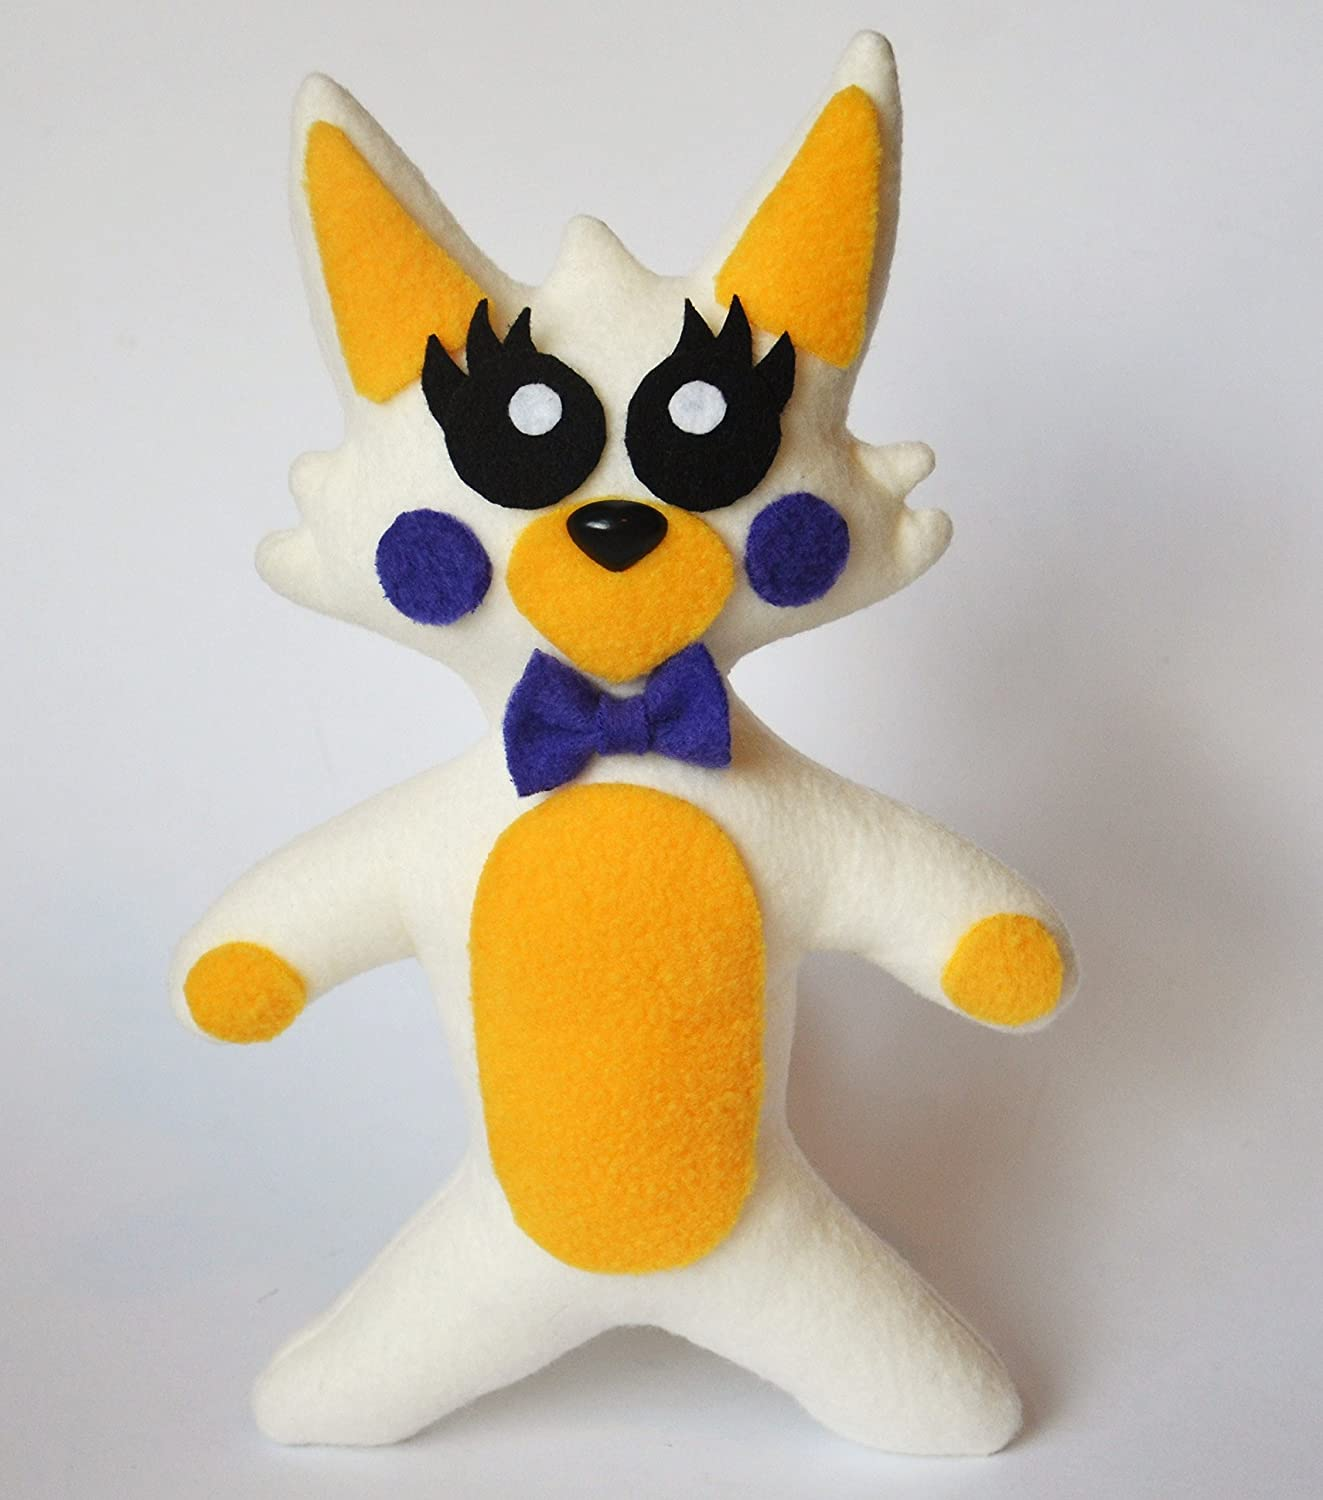 Lolbit Plush ~Handmade~ Five Nights at Freddy's Inspired